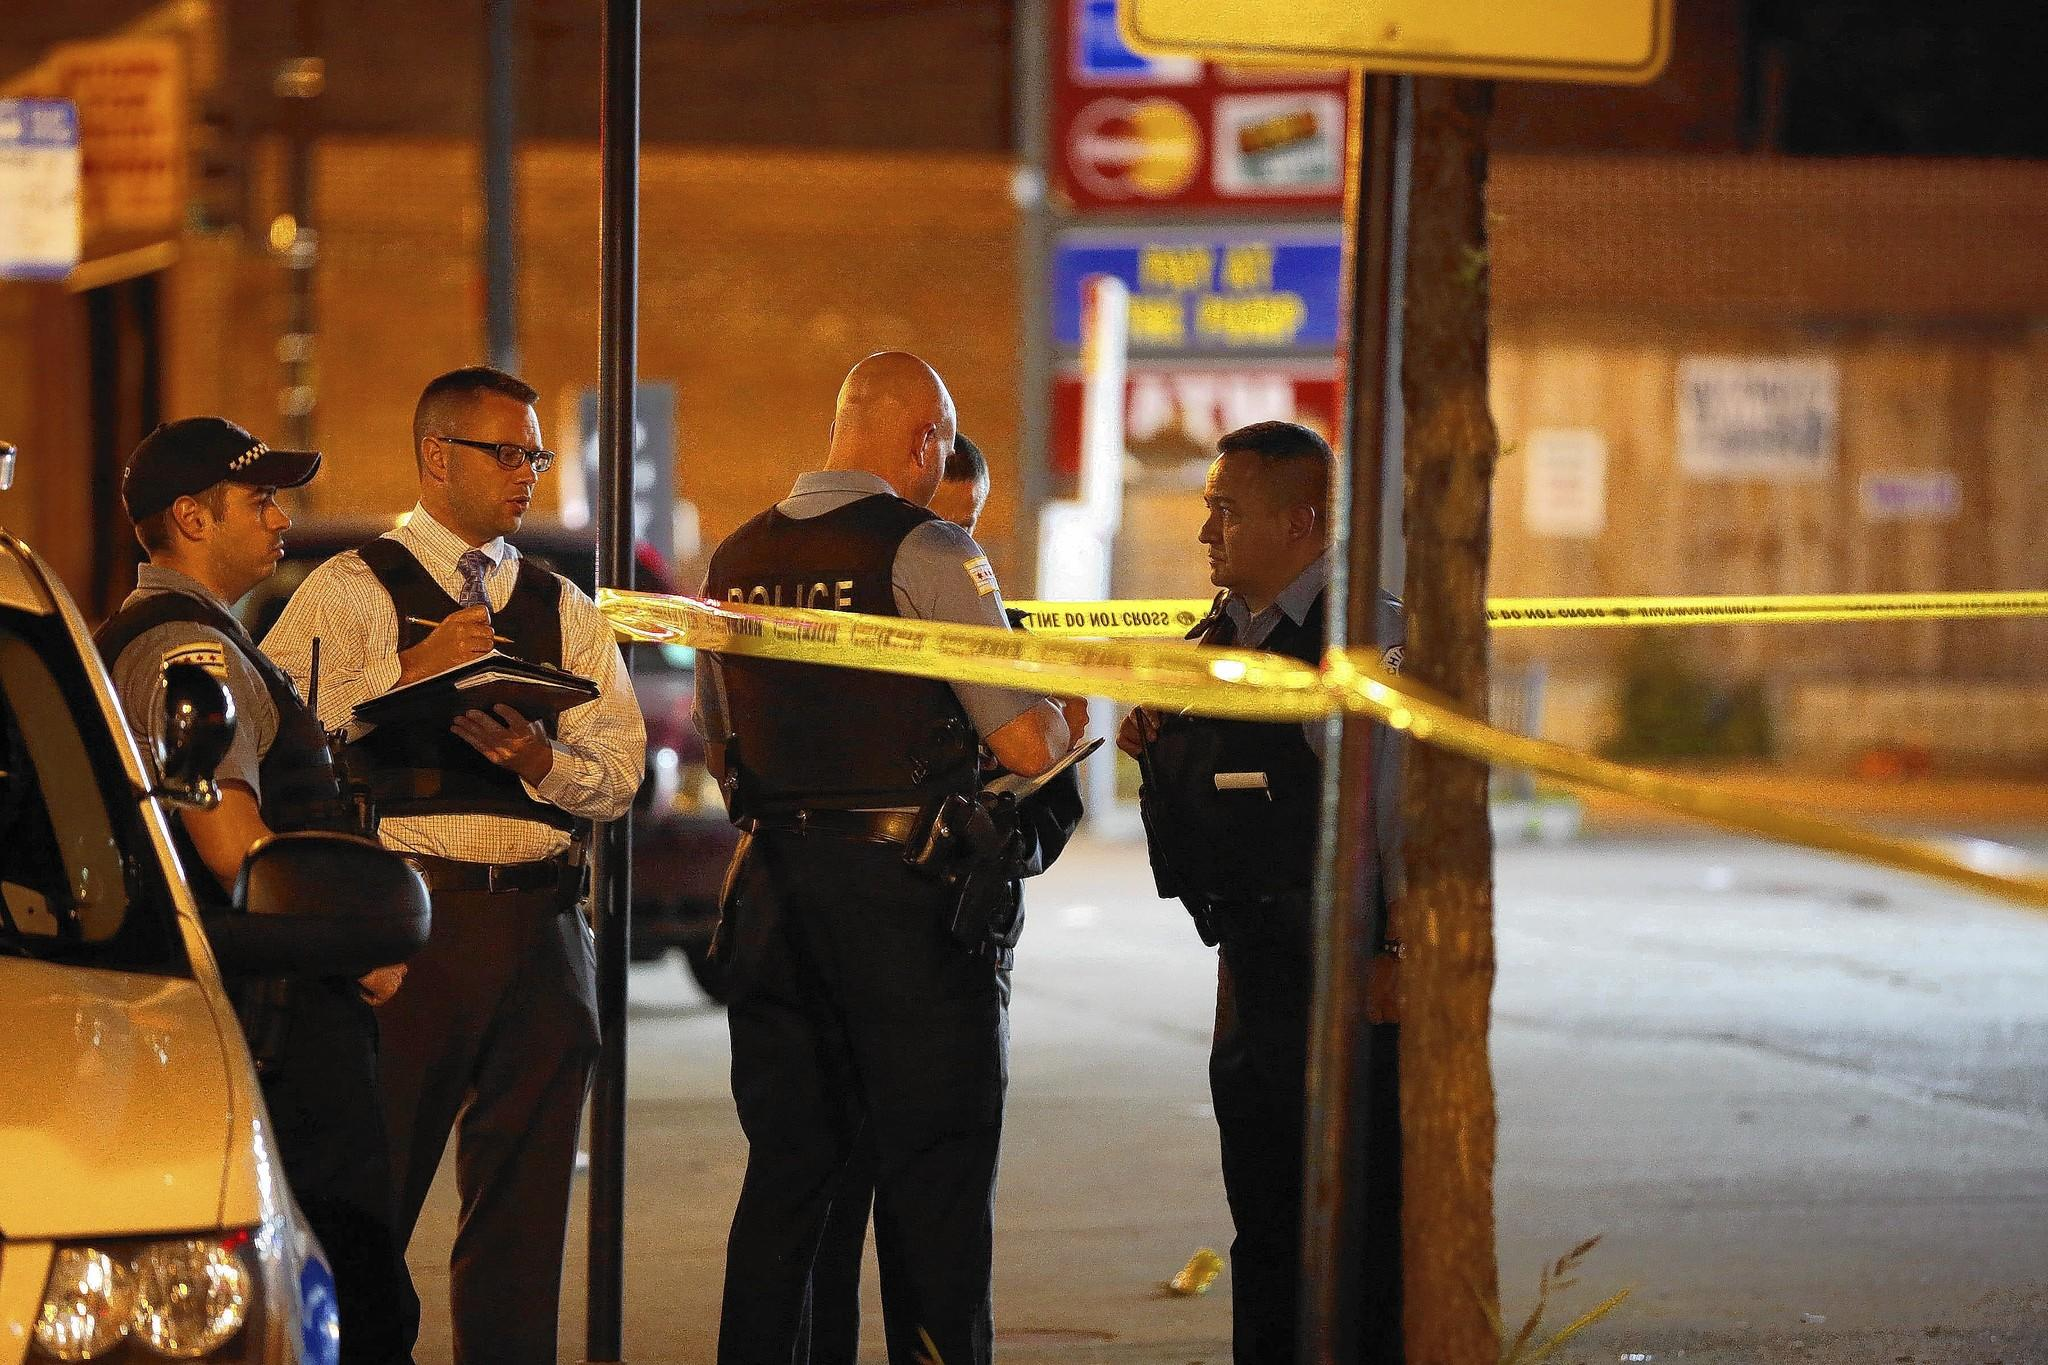 Chicago police at the scene of a shooting in July. Two people were shot, one fatally.